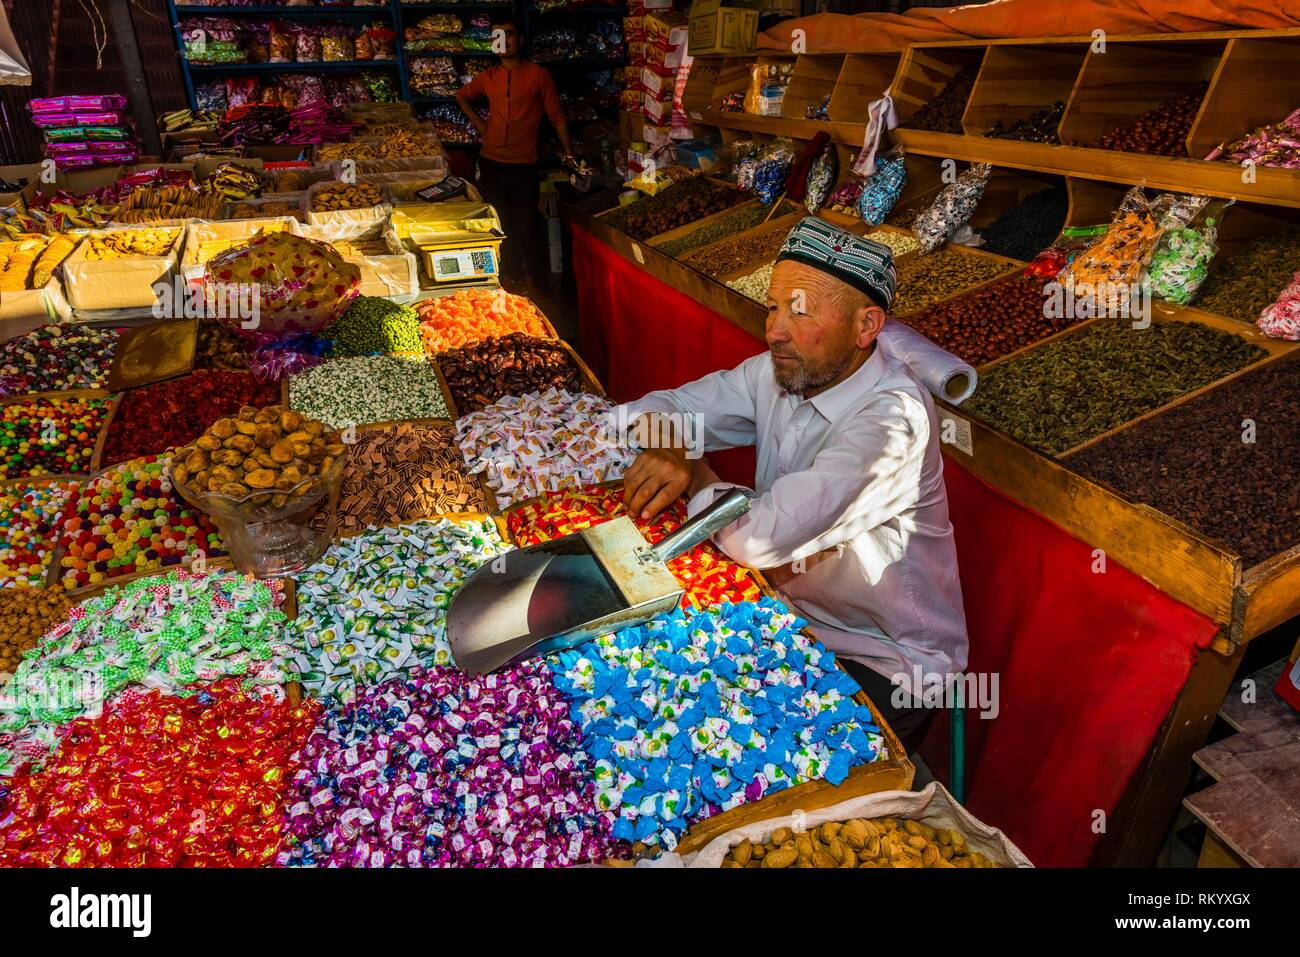 A shopkeeper selling sweets, nuts and dried fruit. Kashgar is an oasis city in Xinjiang Province, China. It is the westernmost city in China, located - Stock Image